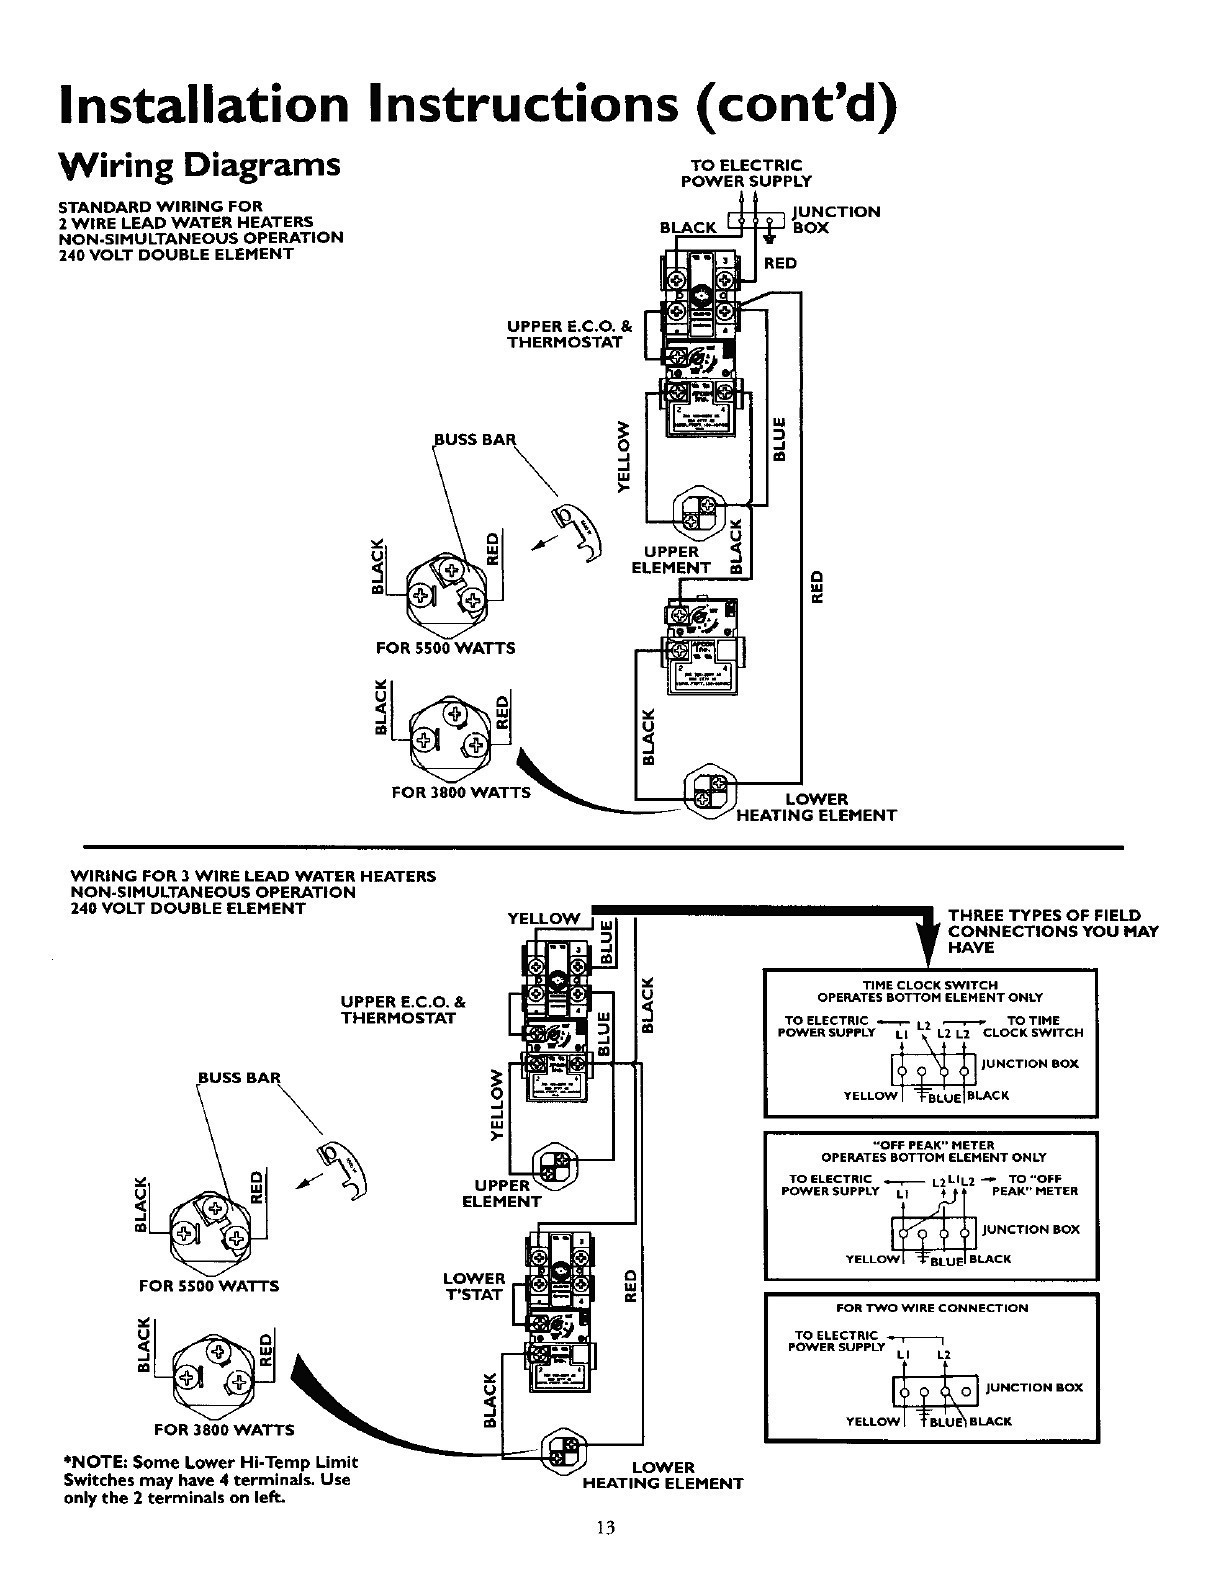 Geyser Thermostat Wiring Diagram Guide And Troubleshooting Of A Atwood Water Heater Parts Excalibur Hot